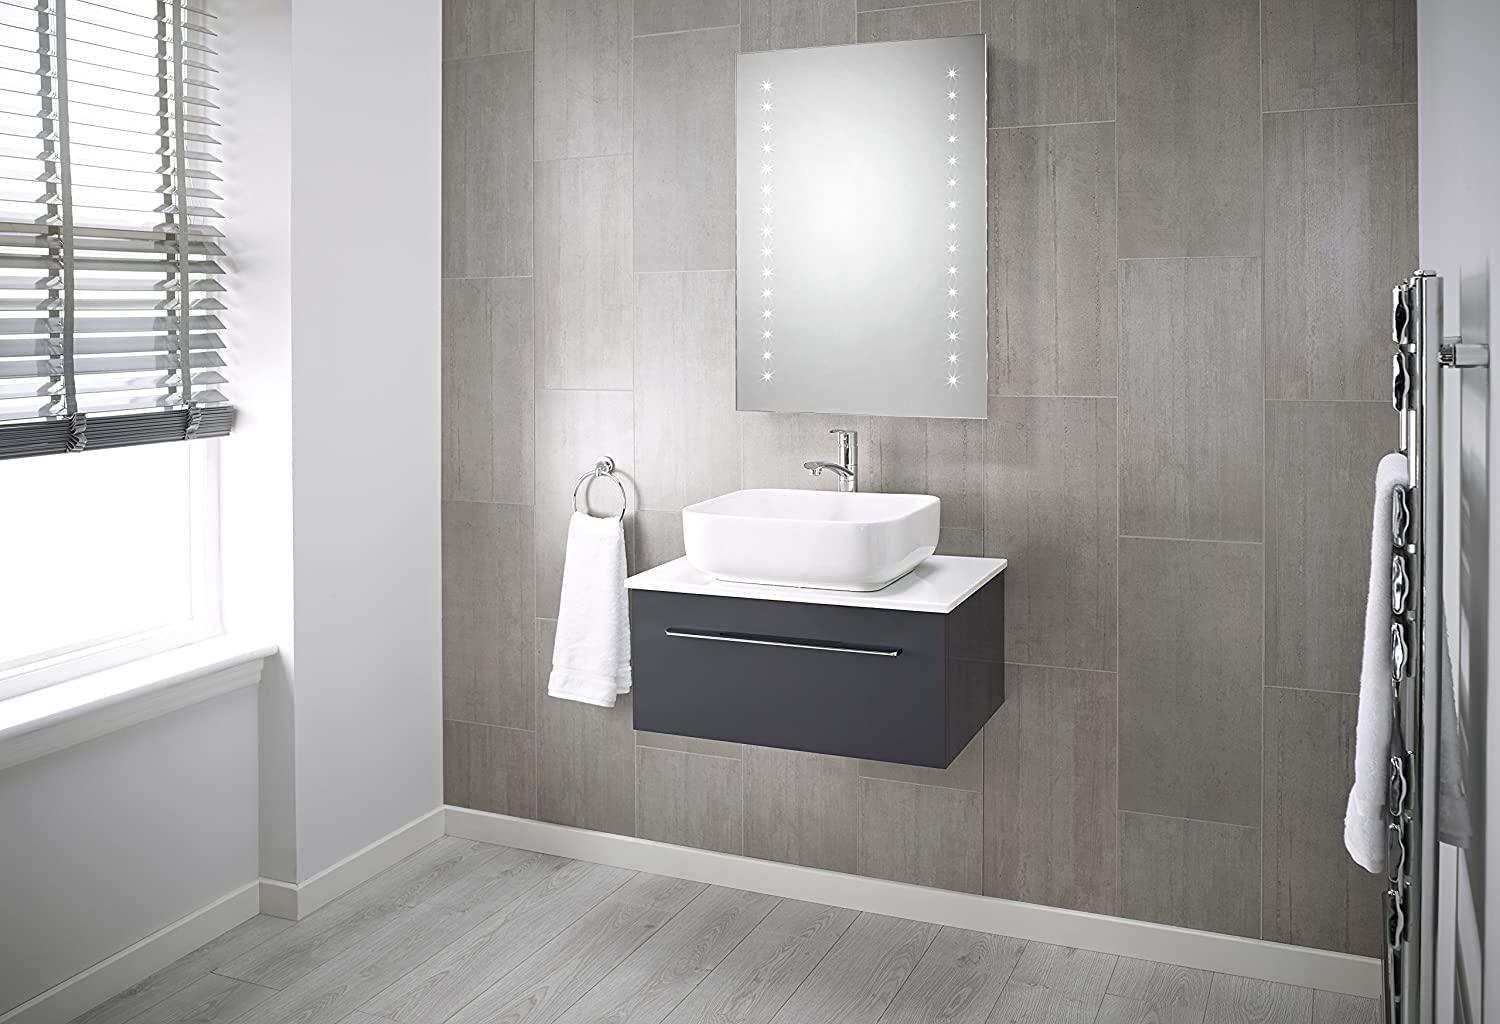 Pebble Grey 600 x 800 mm Bathroom Mirror Ariel LED Illuminated ...